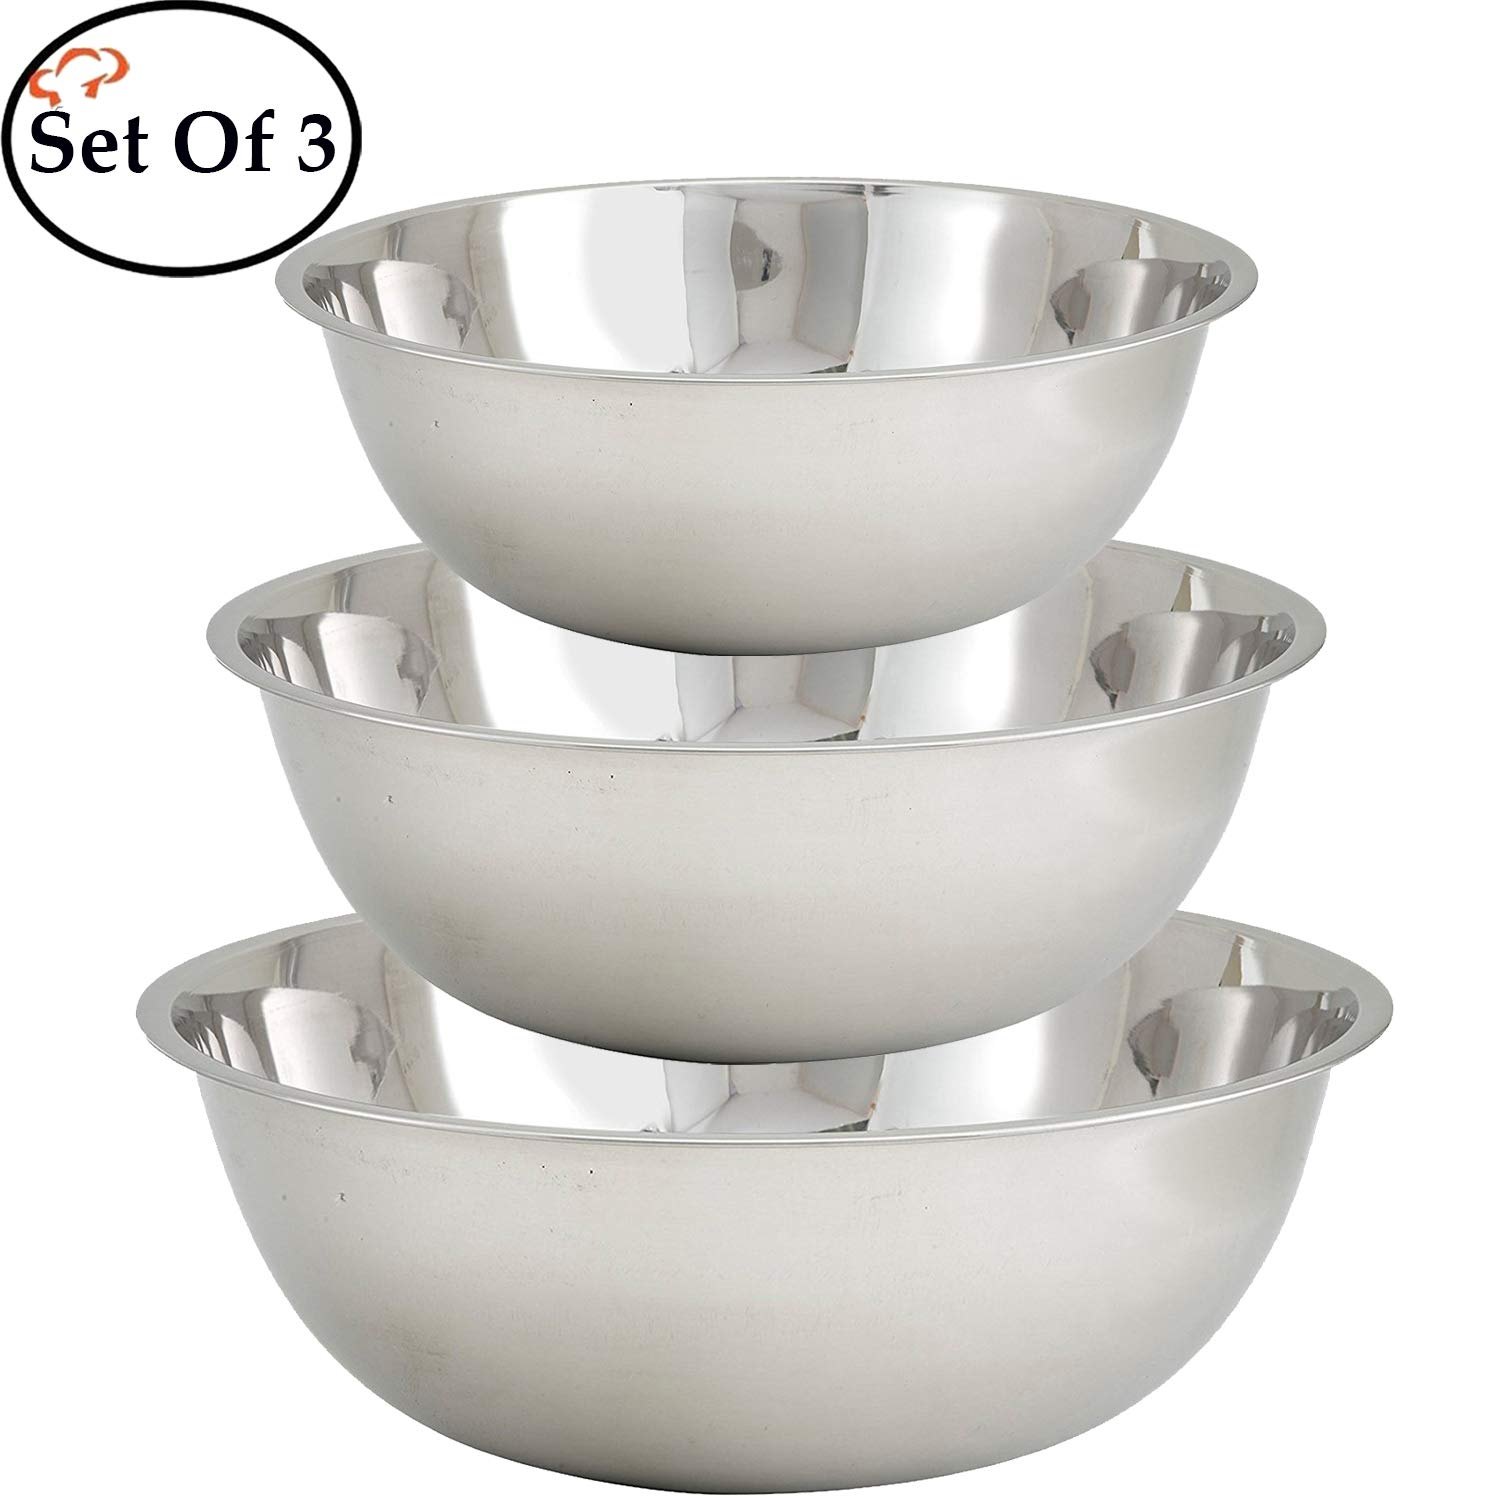 Tiger Chef Mixing Bowls Stainless Steel 13, 16 & 20 quart Multi-Purpose Commercial Cyber Monday Deals Week, Large, Set of 3